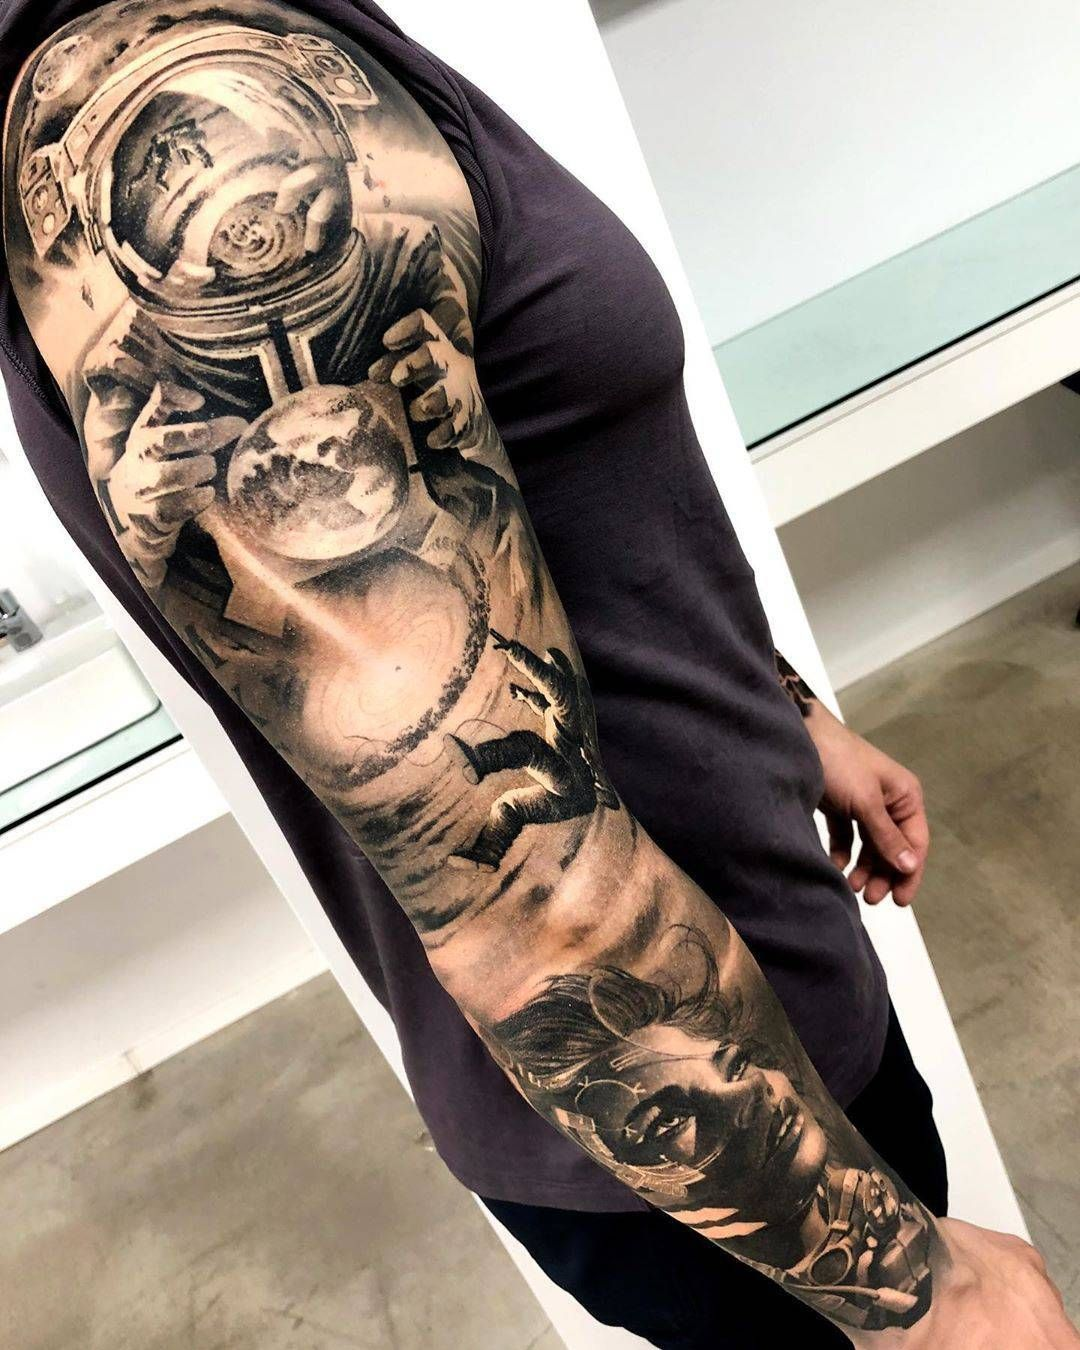 Matias Noble S Black And Grey Realistic Tattoo Space Tattoo Sleeve Tattoo Sleeve Designs Realistic Tattoo Sleeve